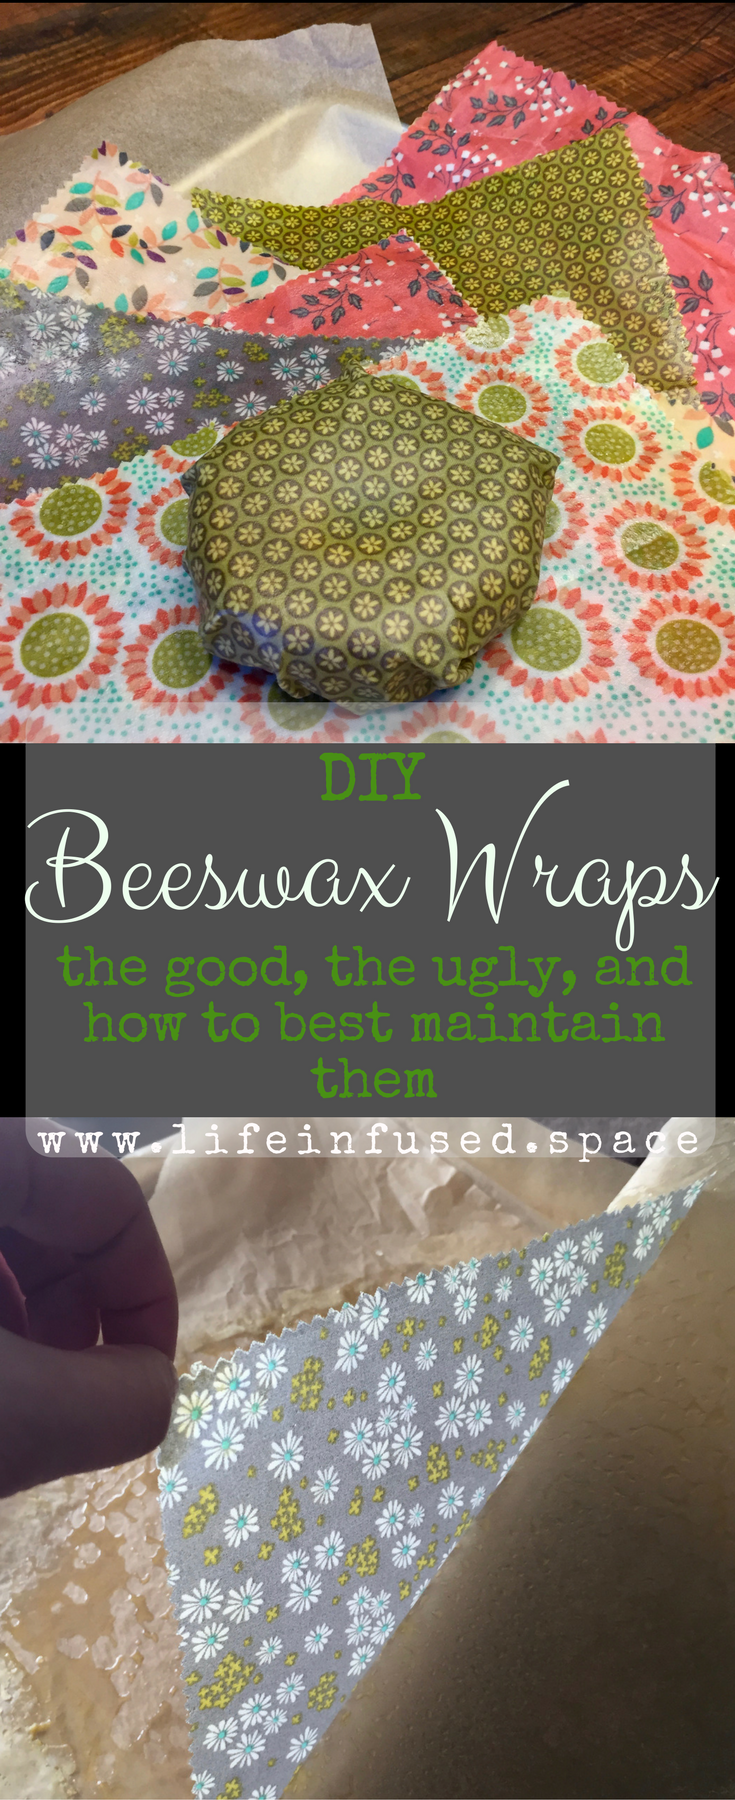 DIY Beeswax Wraps - the good, the ugly, and how to best maintain them